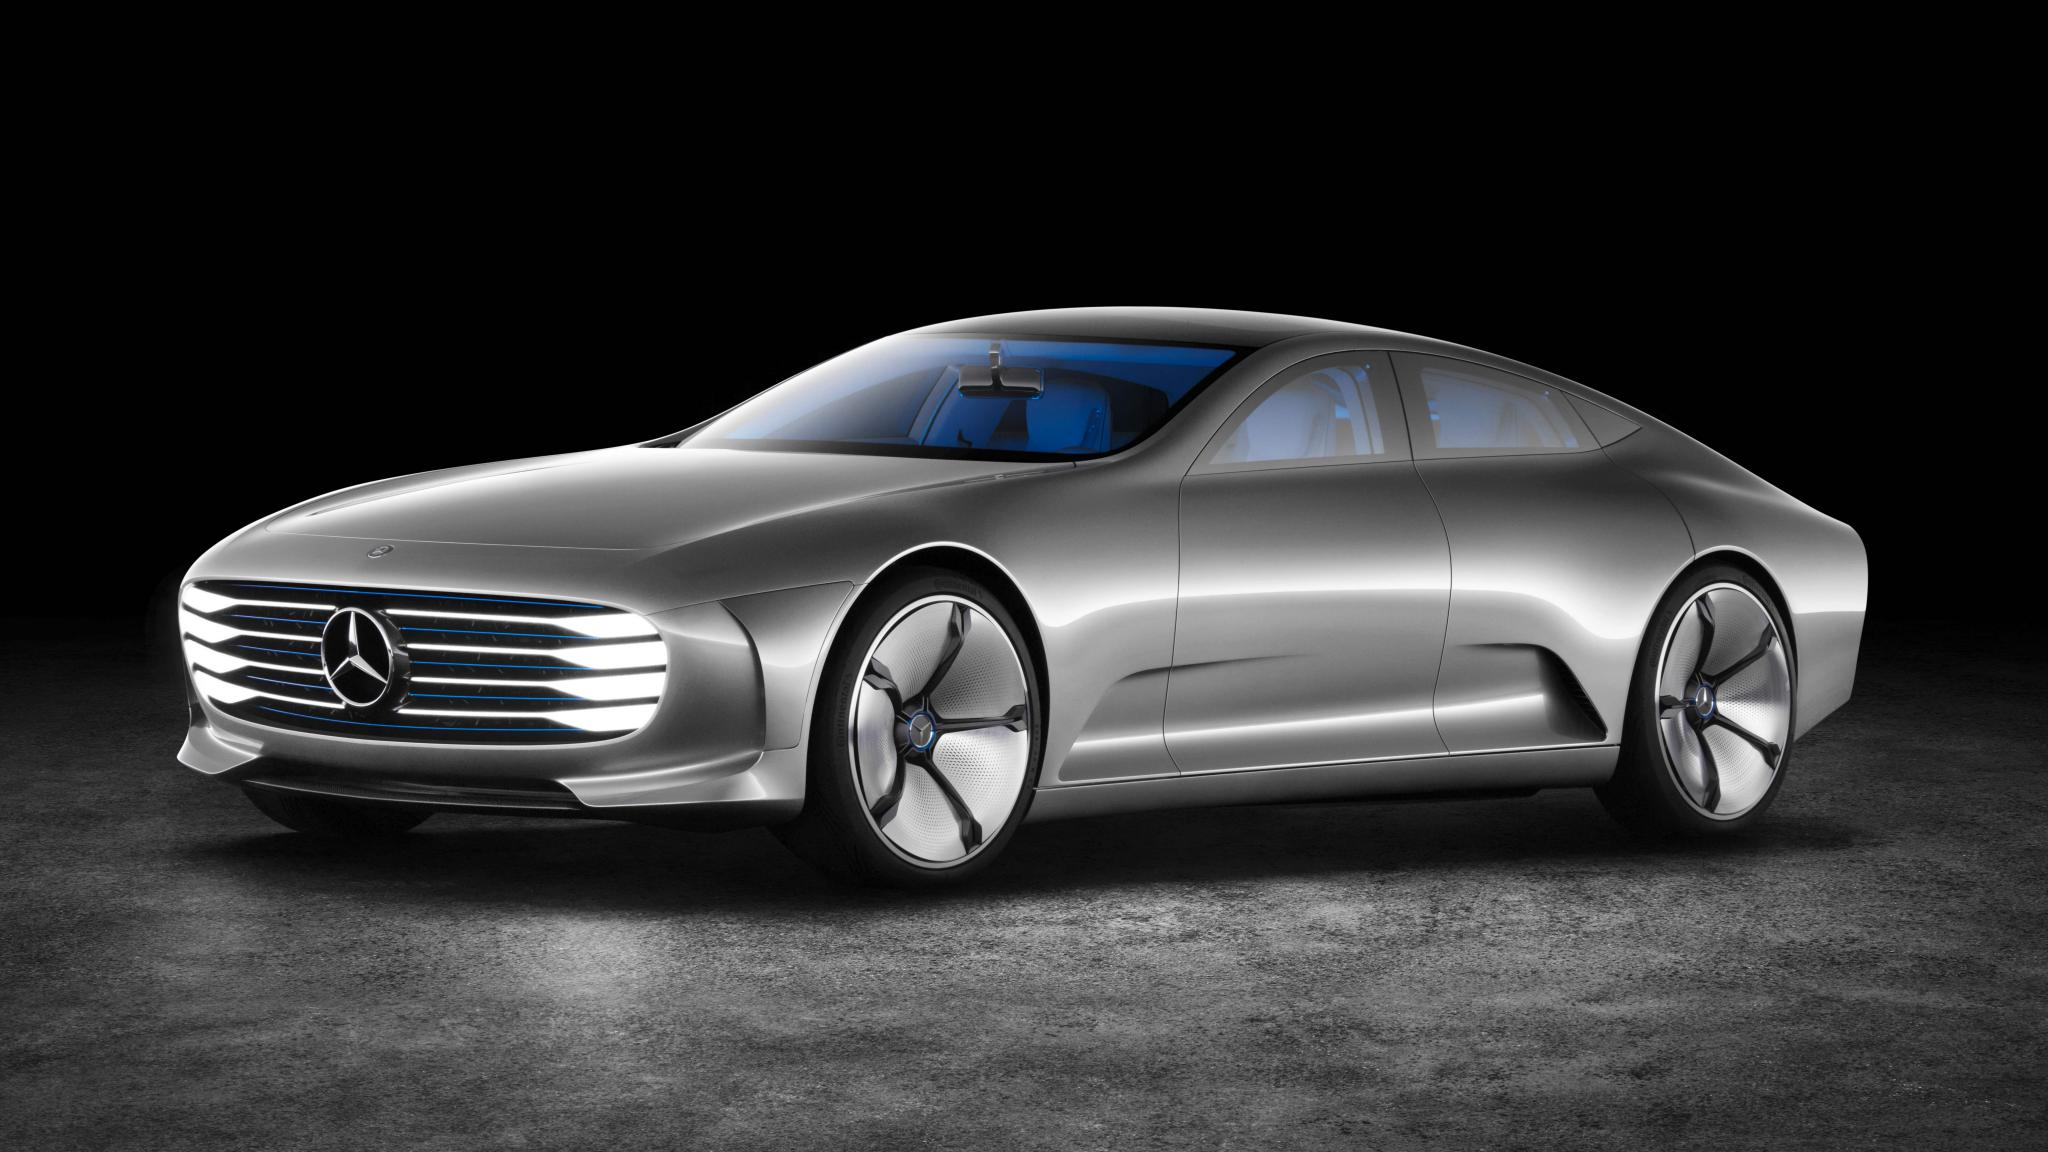 Mercedes to Launch Electric Sub-Brand to Compete with BMW i Cars